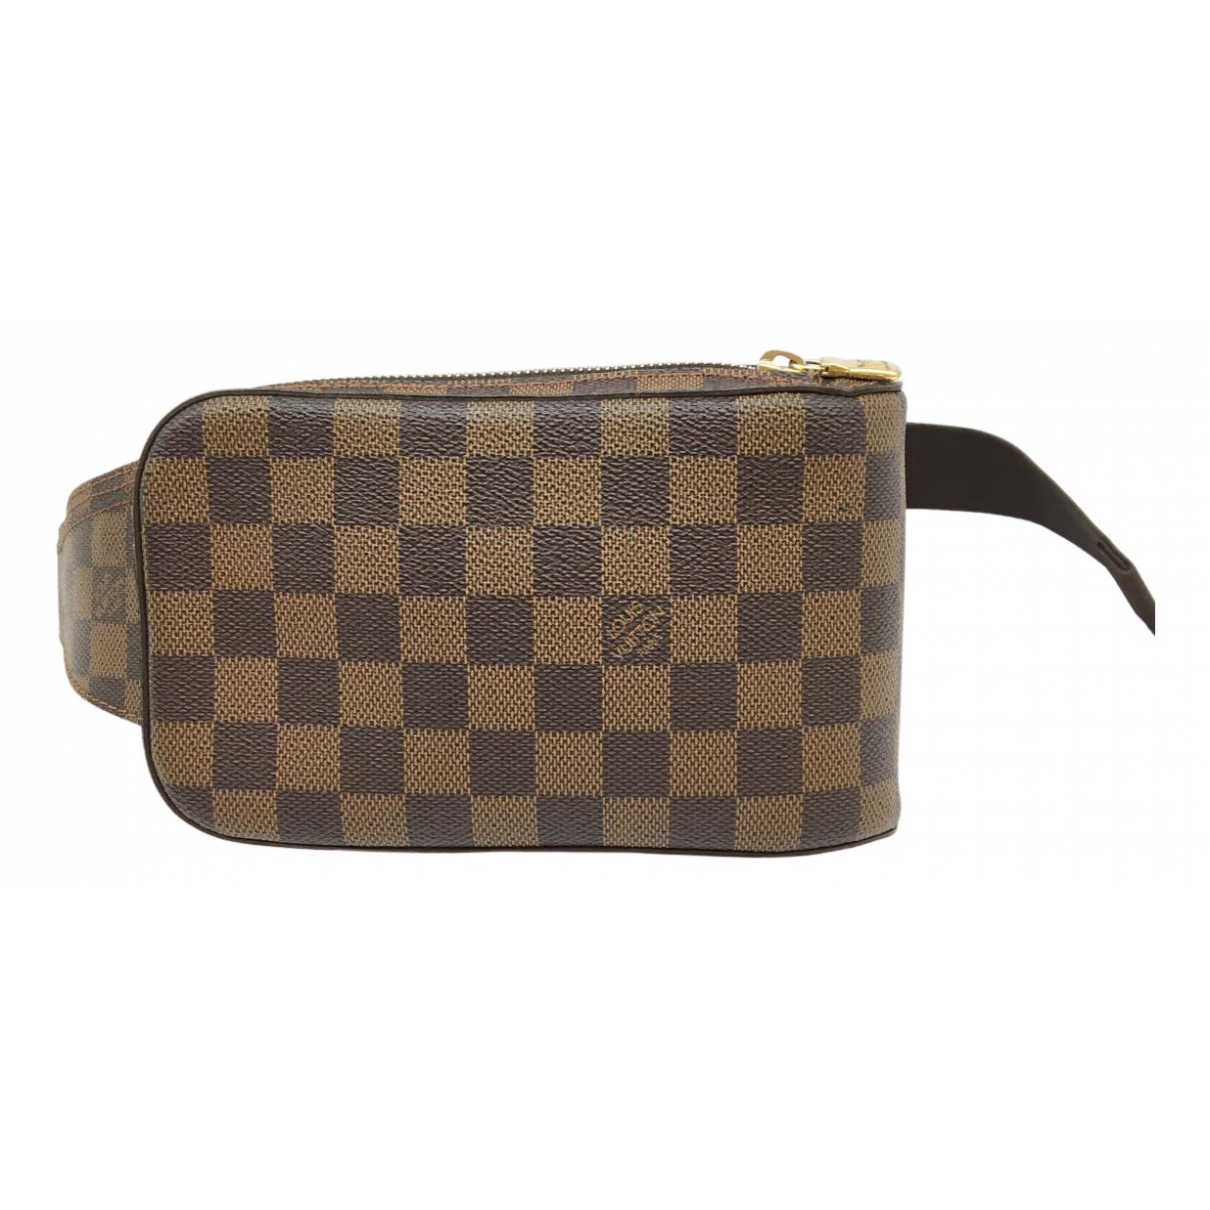 Pochette Geronimo de Lona Louis Vuitton